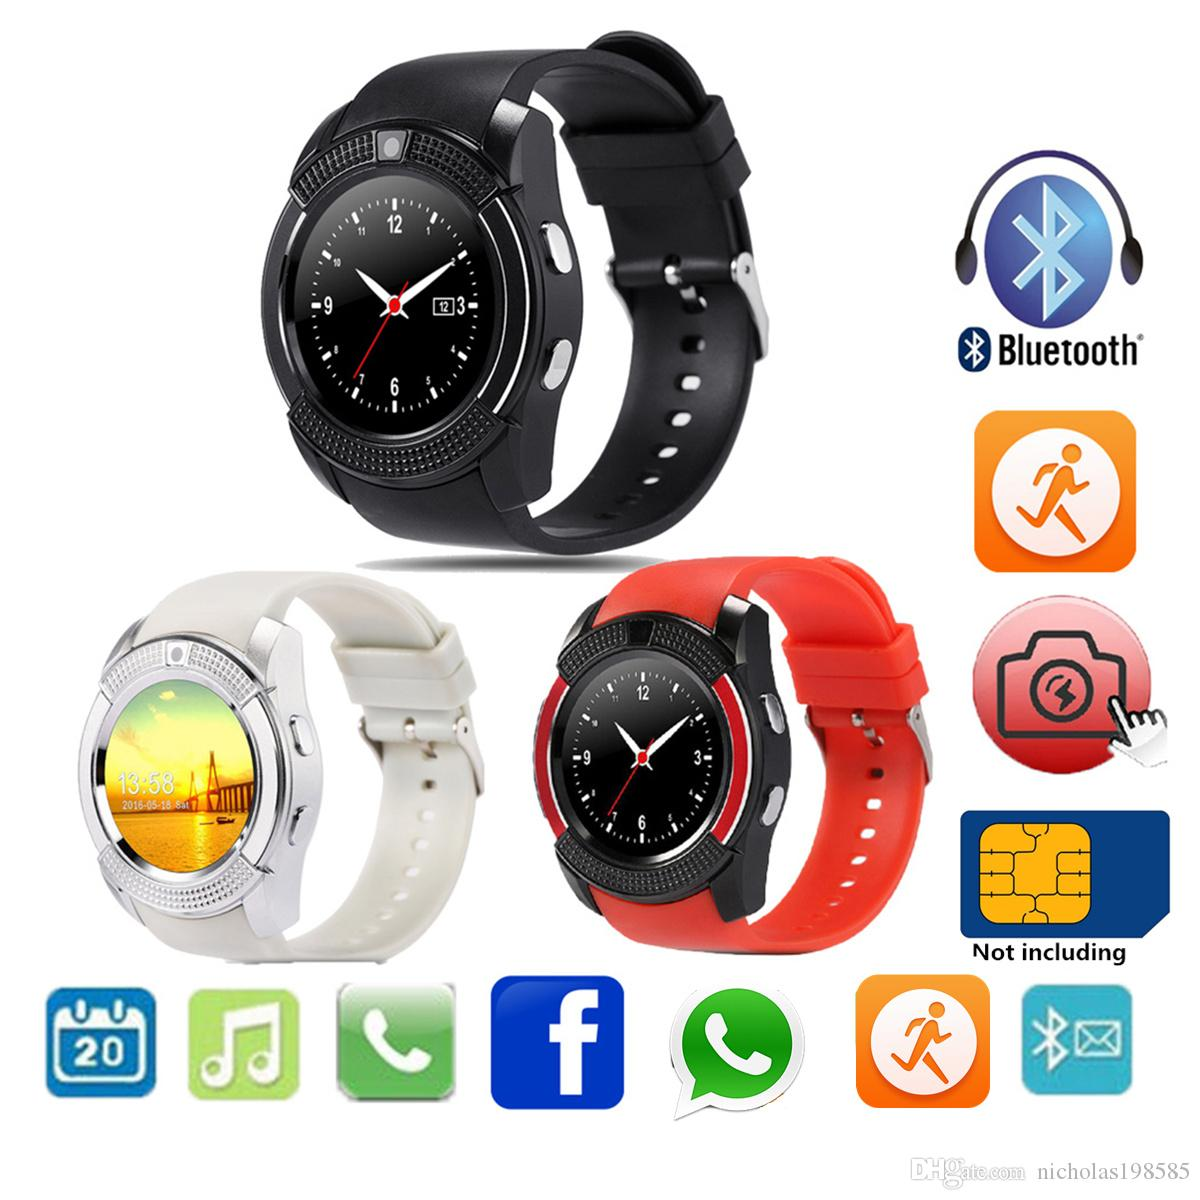 Smartwatch All Questions And Answers How To Change Wallpaper In V8 Smart Watch How To Change